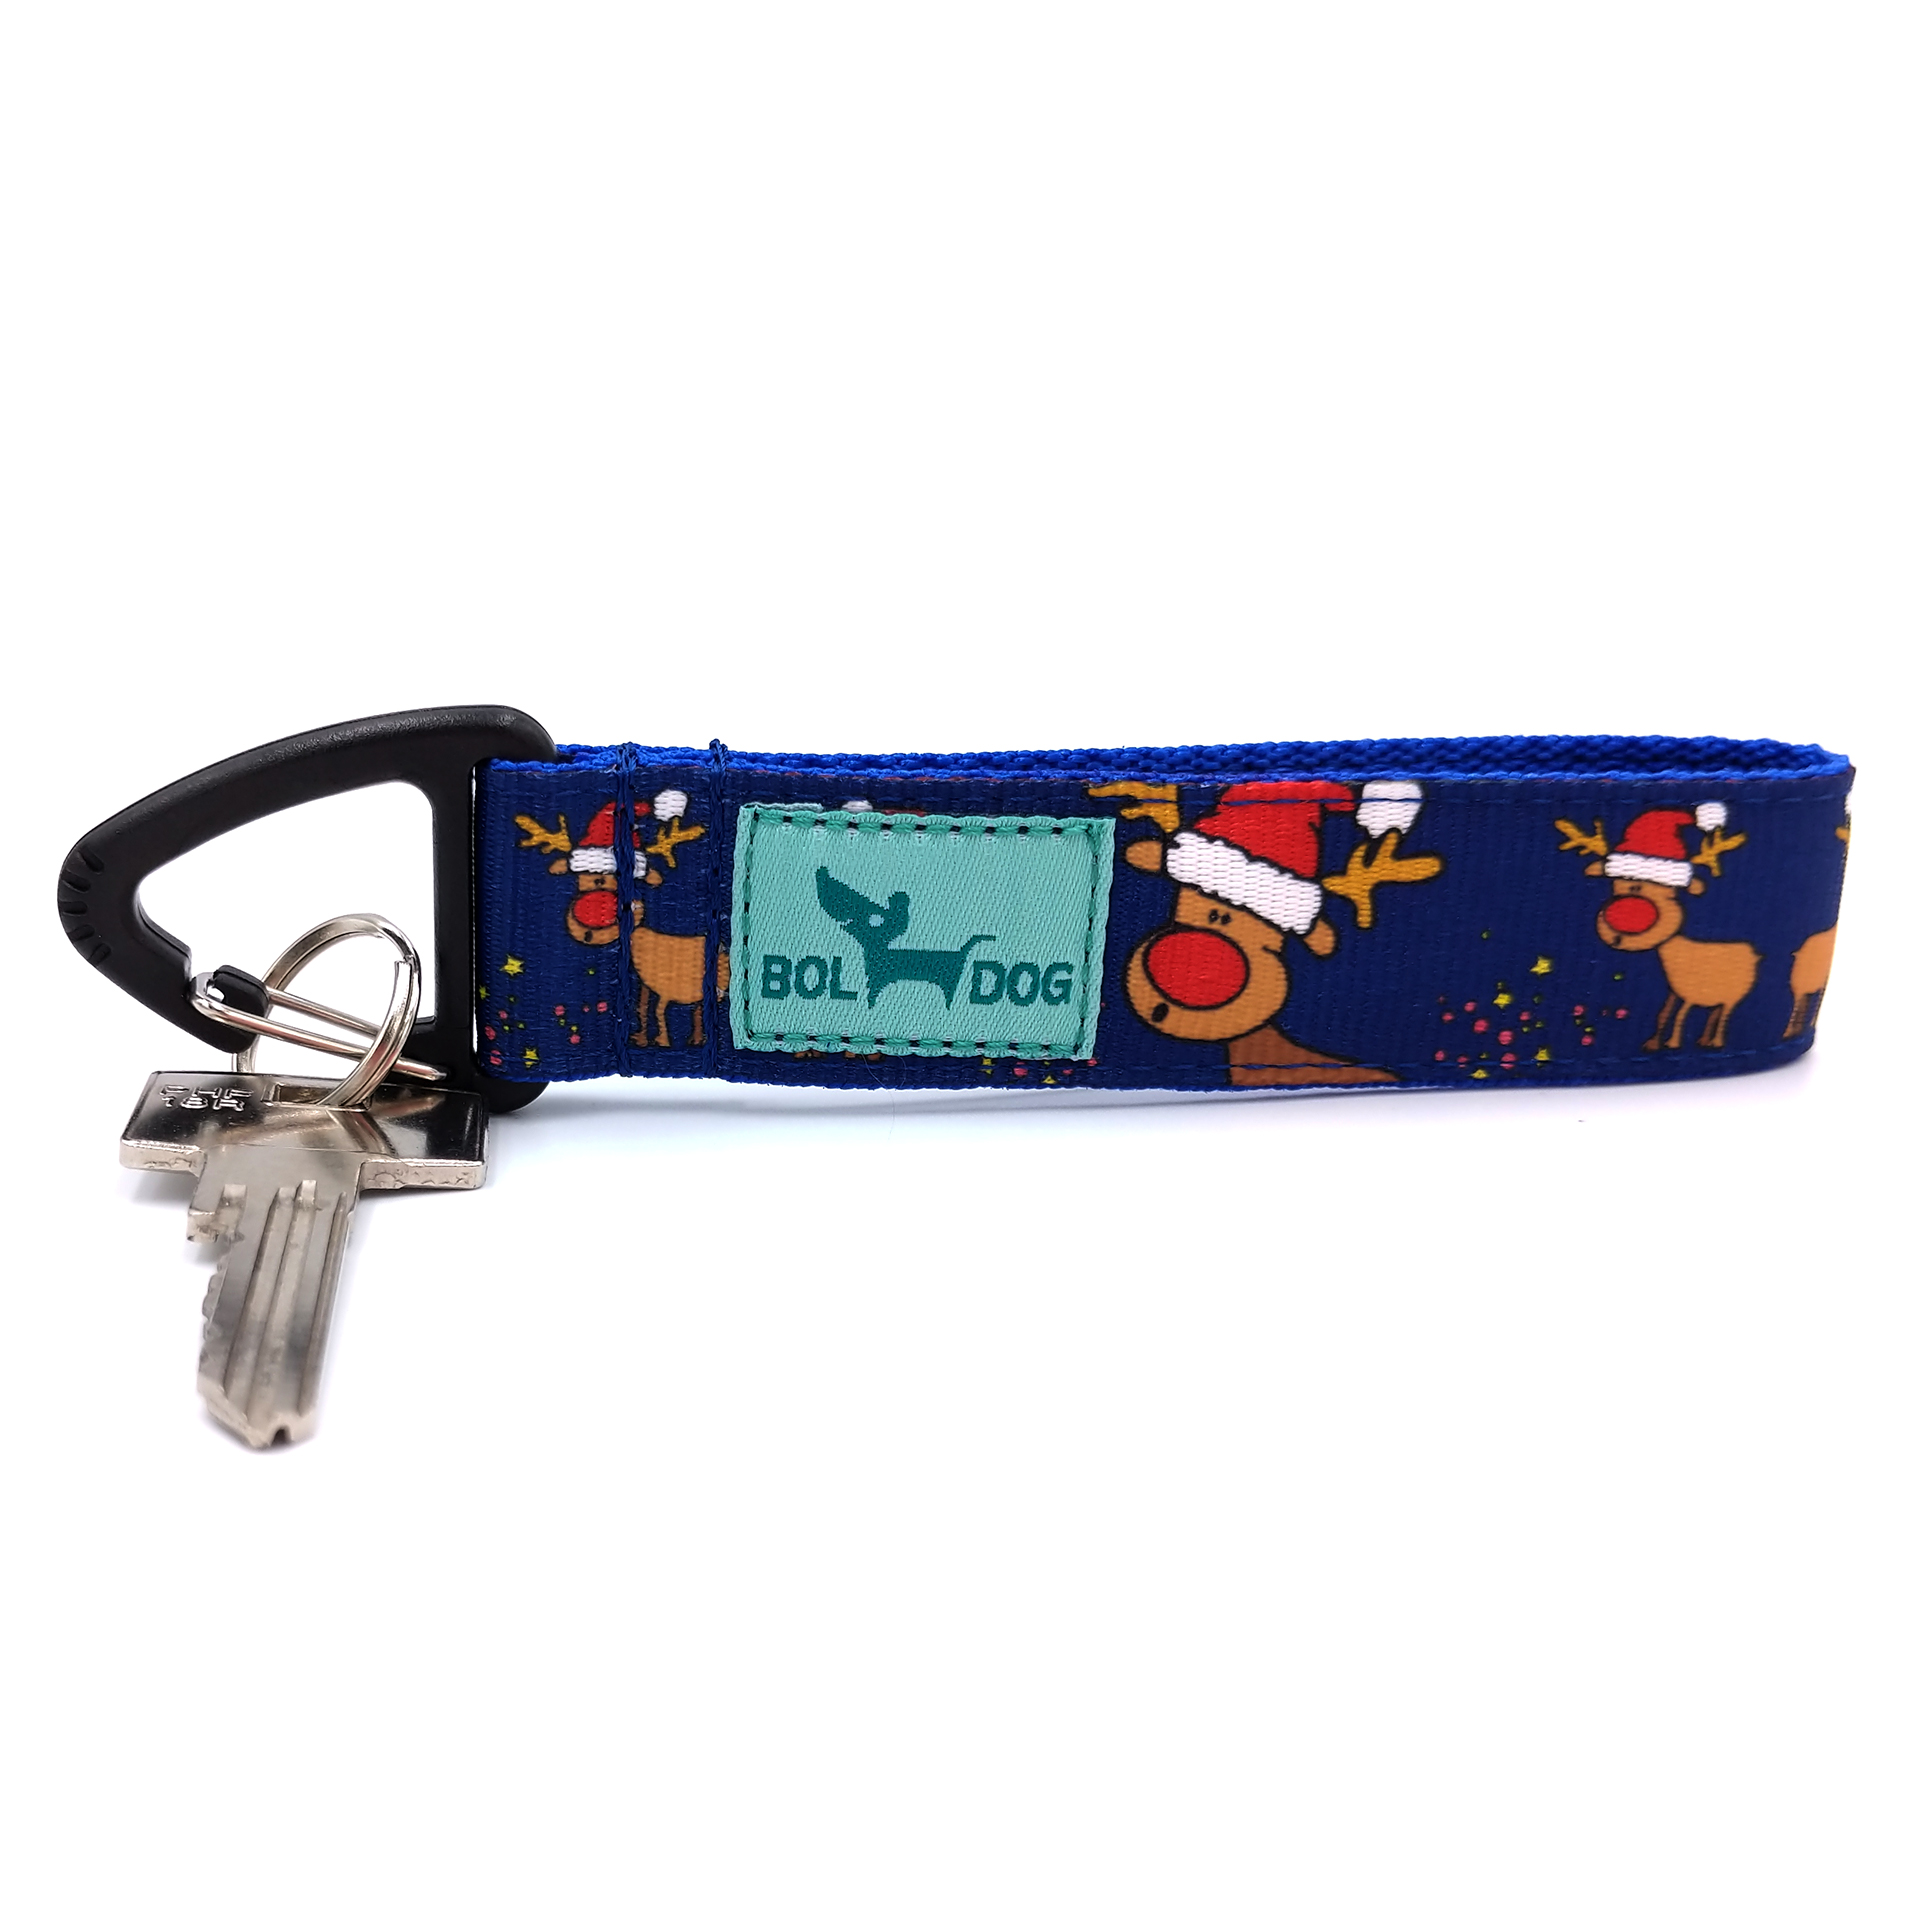 Rudolph blue key holder